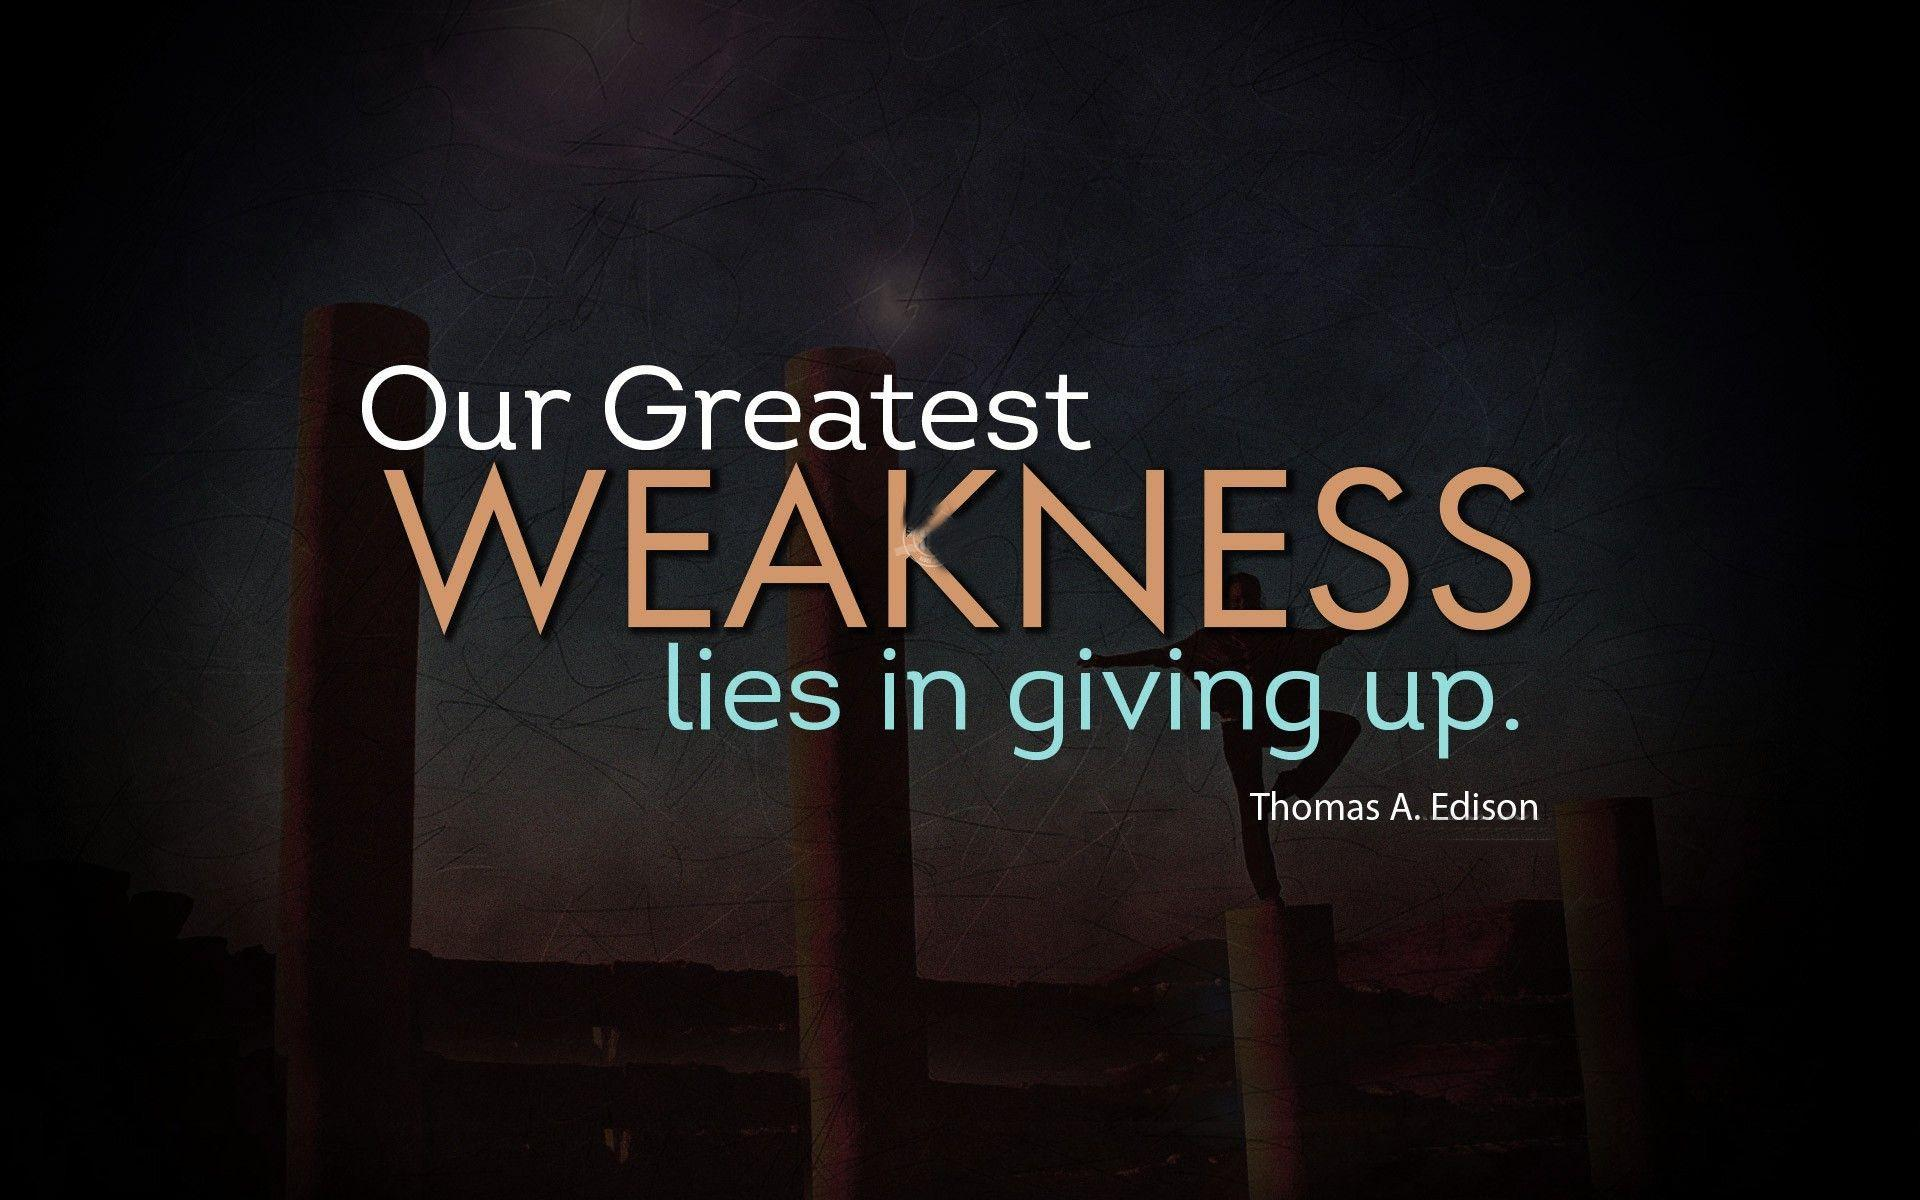 Thomas Edison Quotes About Greatest Weakness image pics for